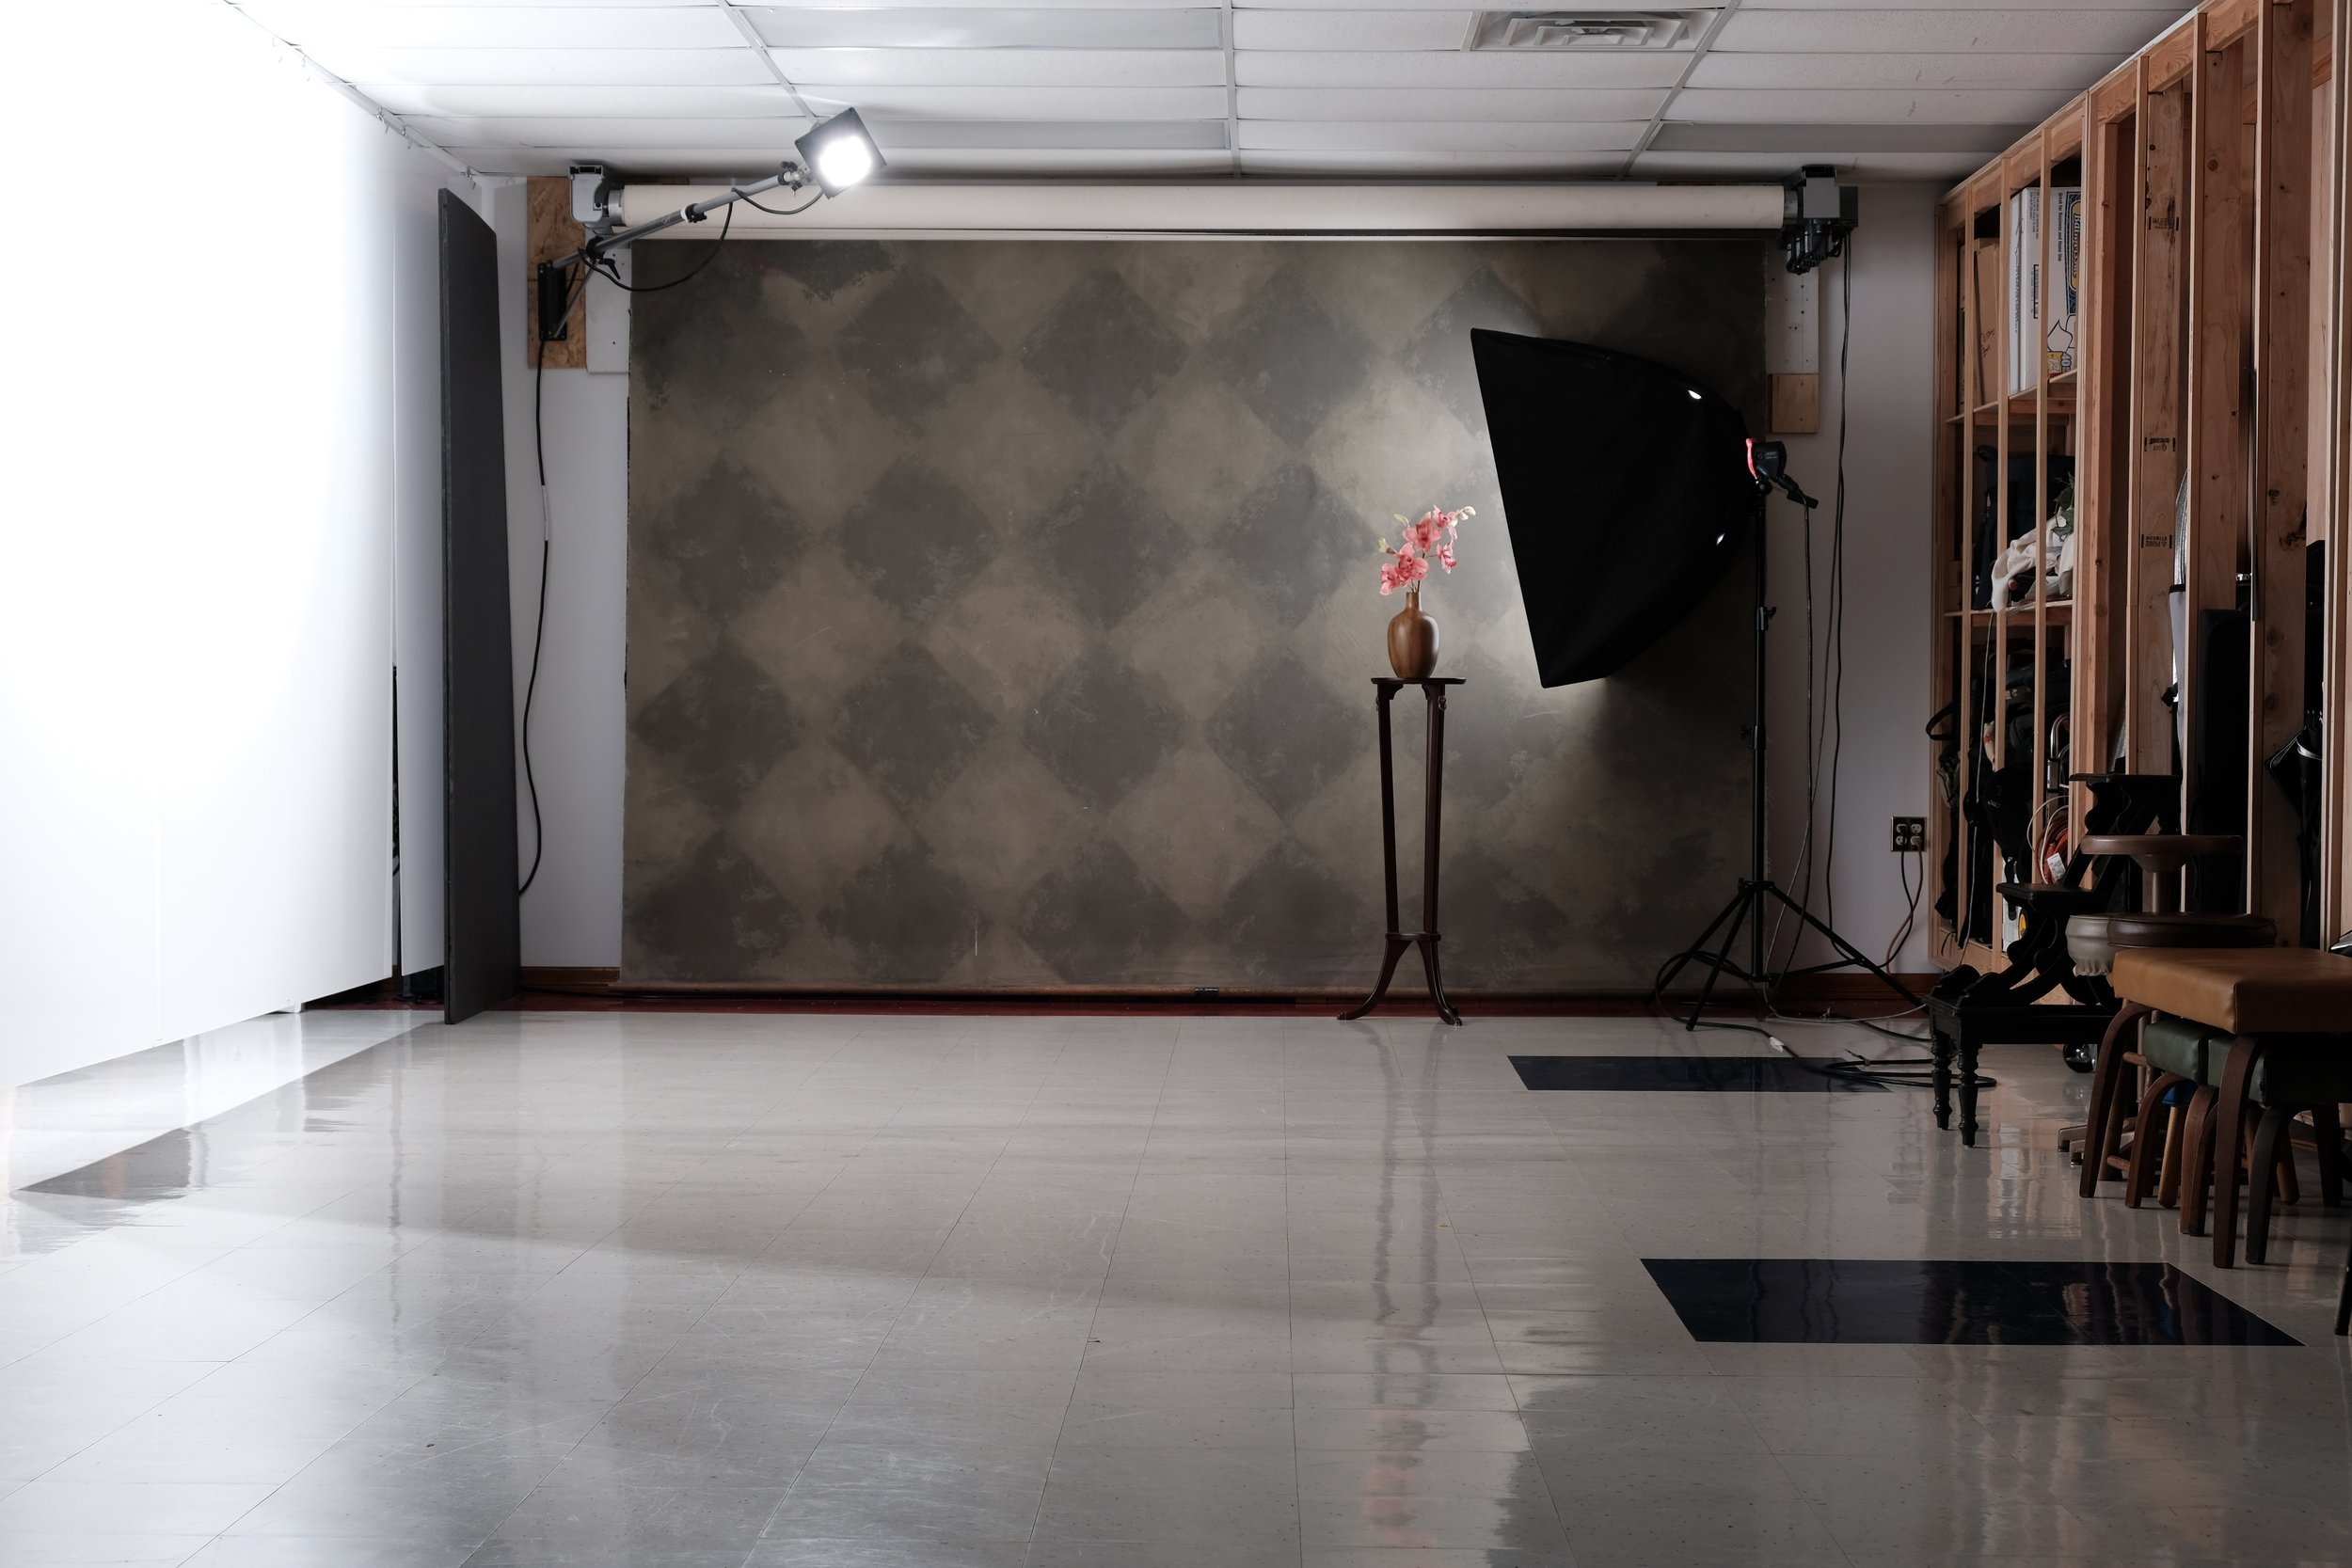 16x30 space with three 12ft canvas background options. Sample Images from studio 2 here.